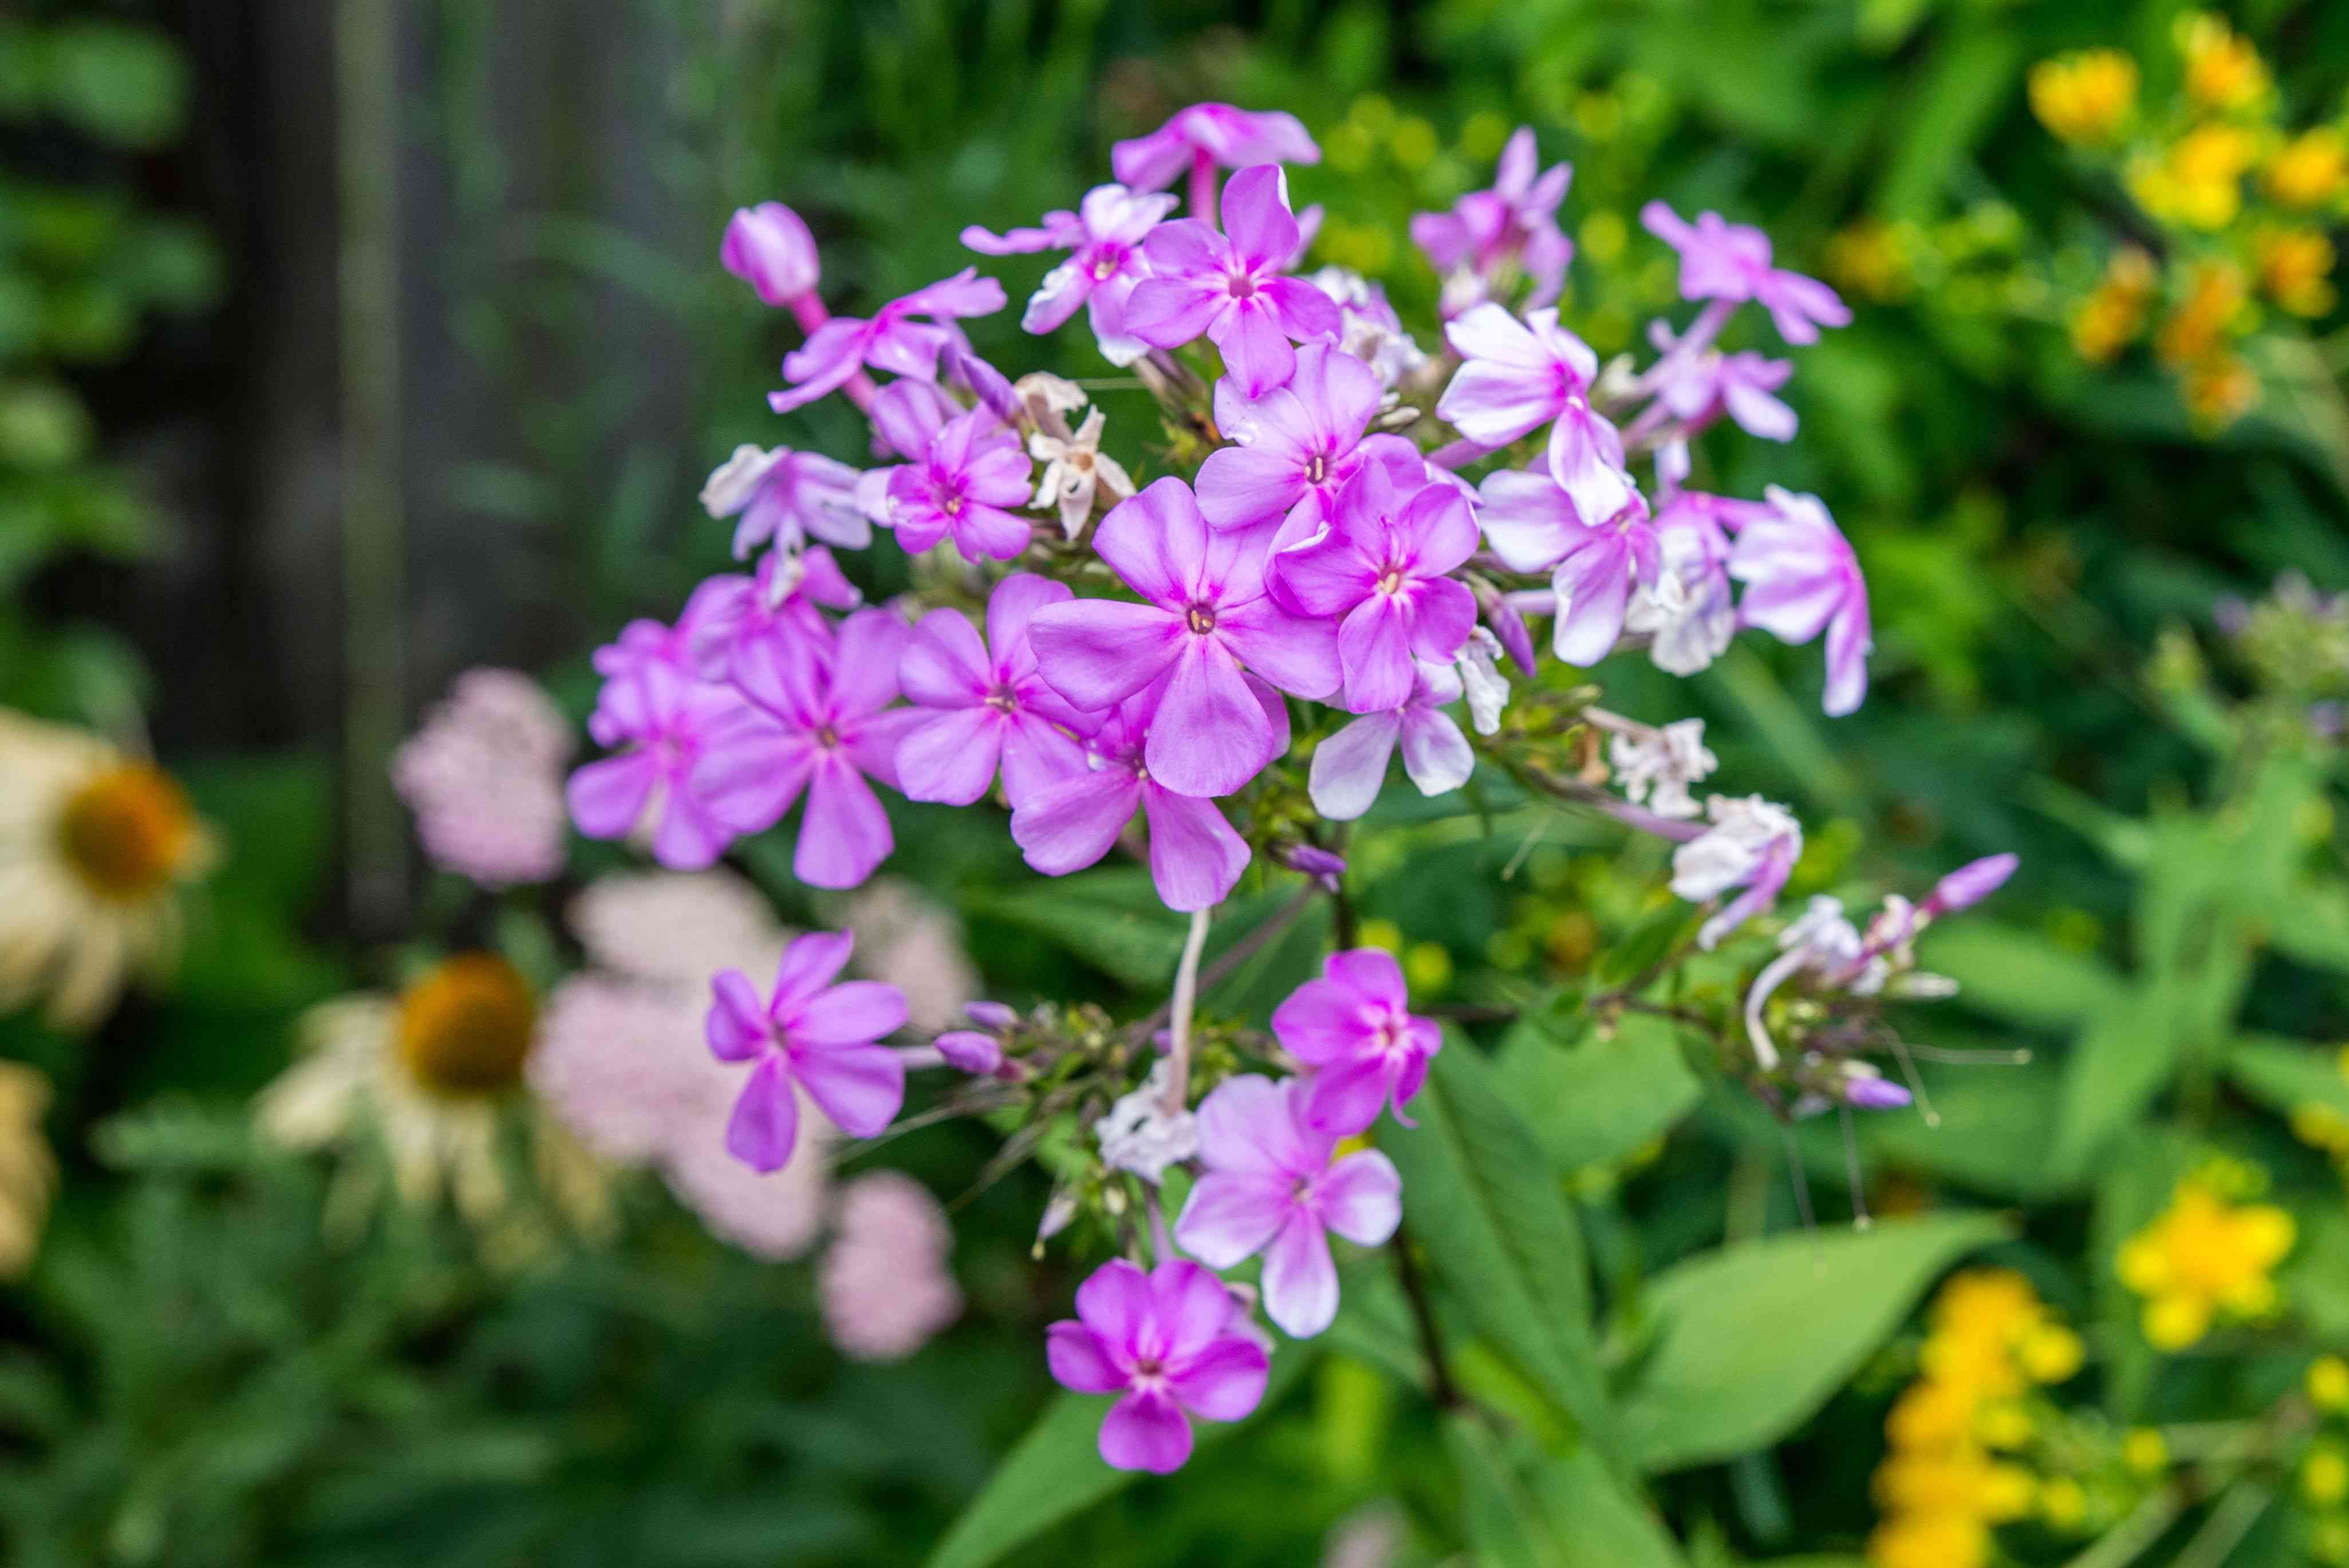 Phlox plant with small purple and white flowers clustered on end of stem